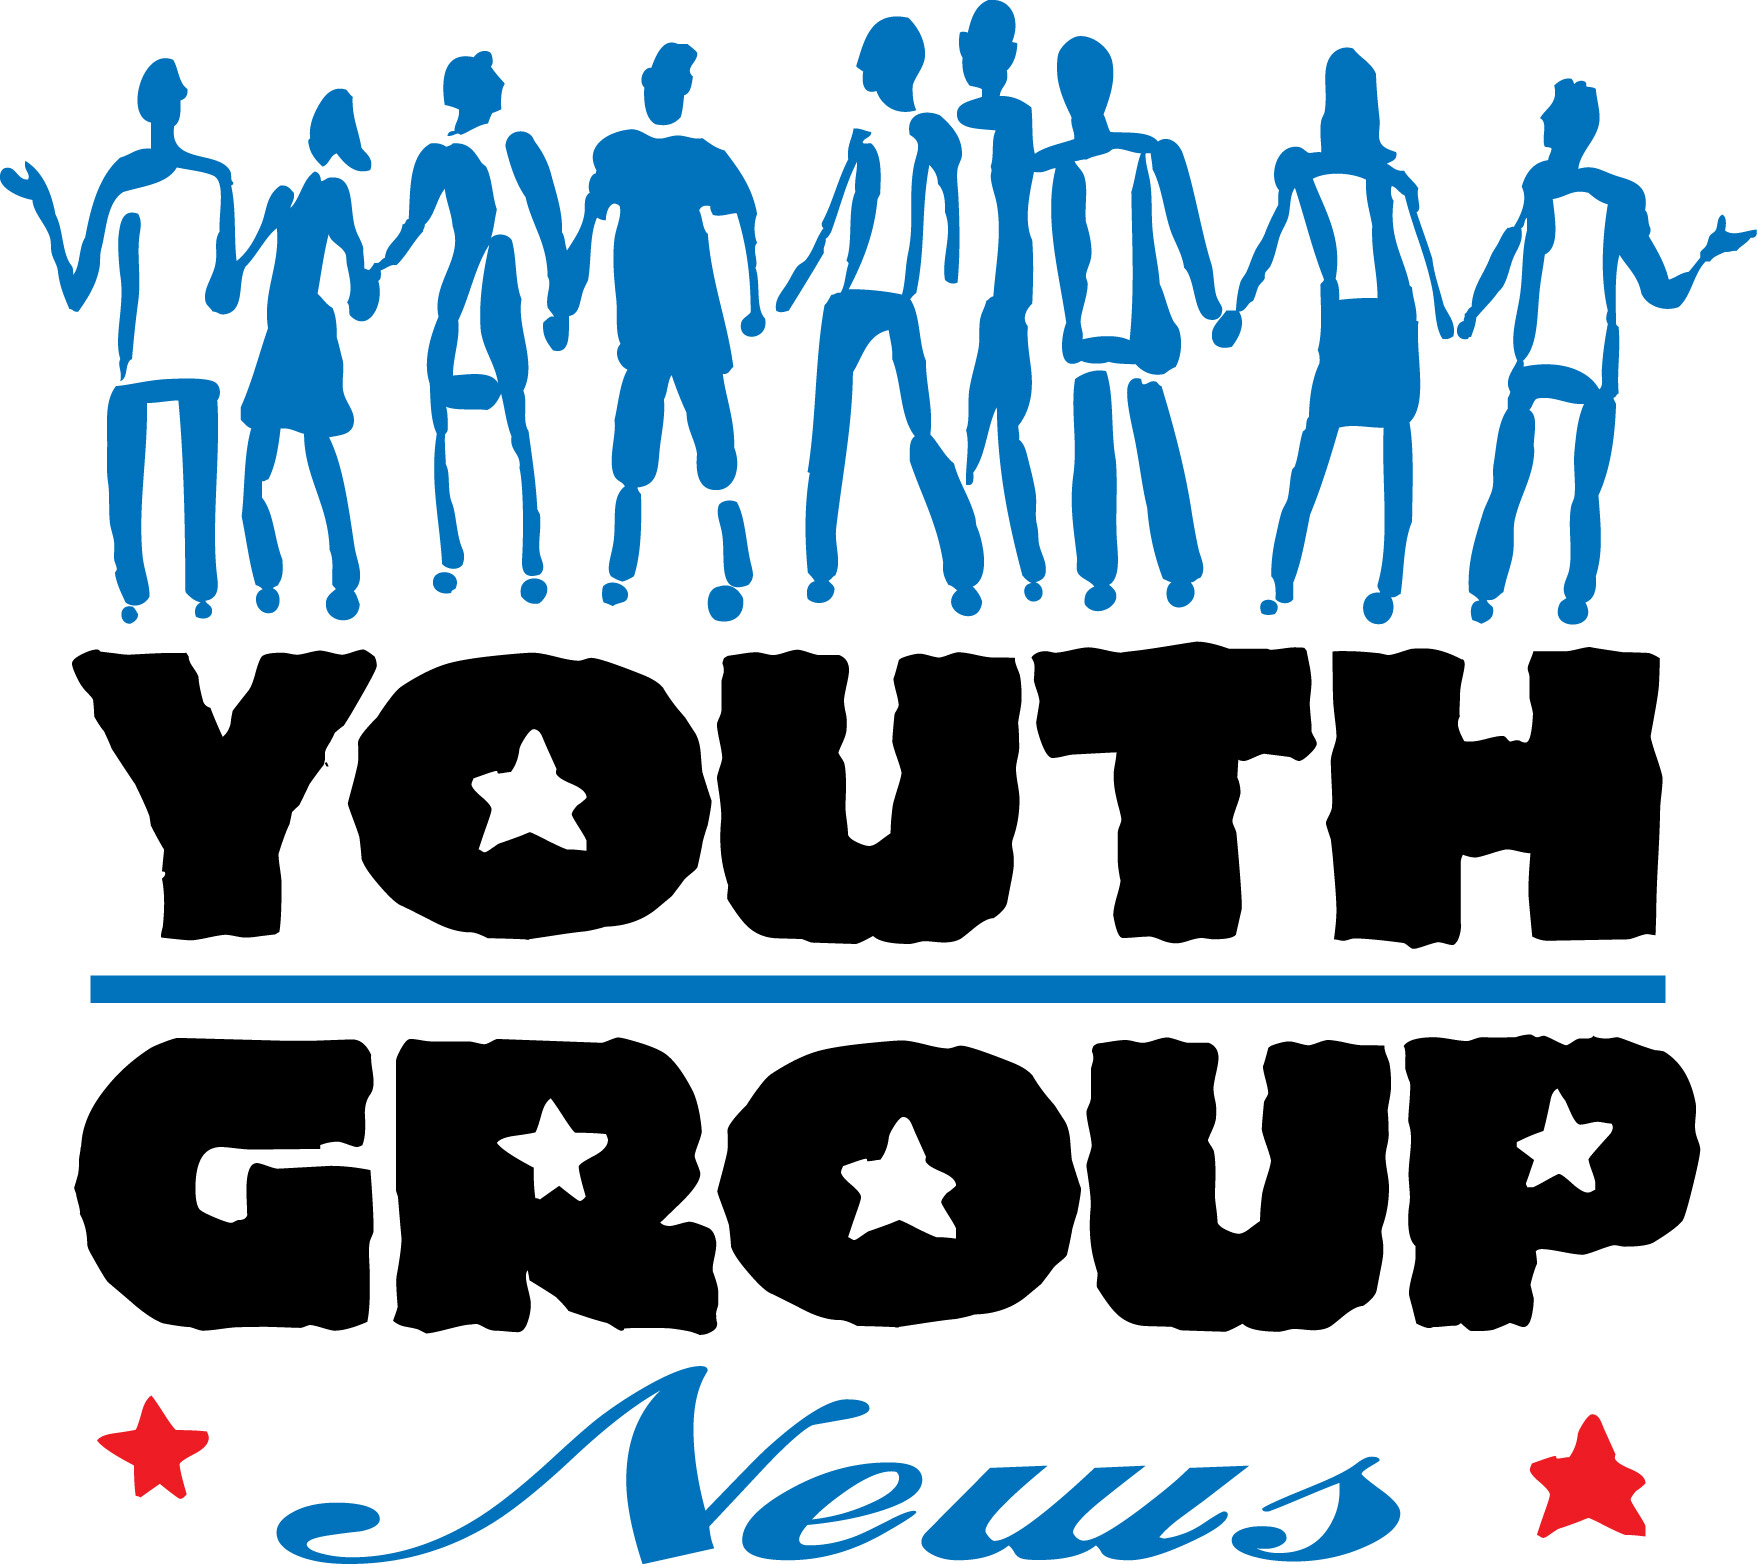 Club clipart youth leadership Clip Free Youth youth%20clipart Clipart